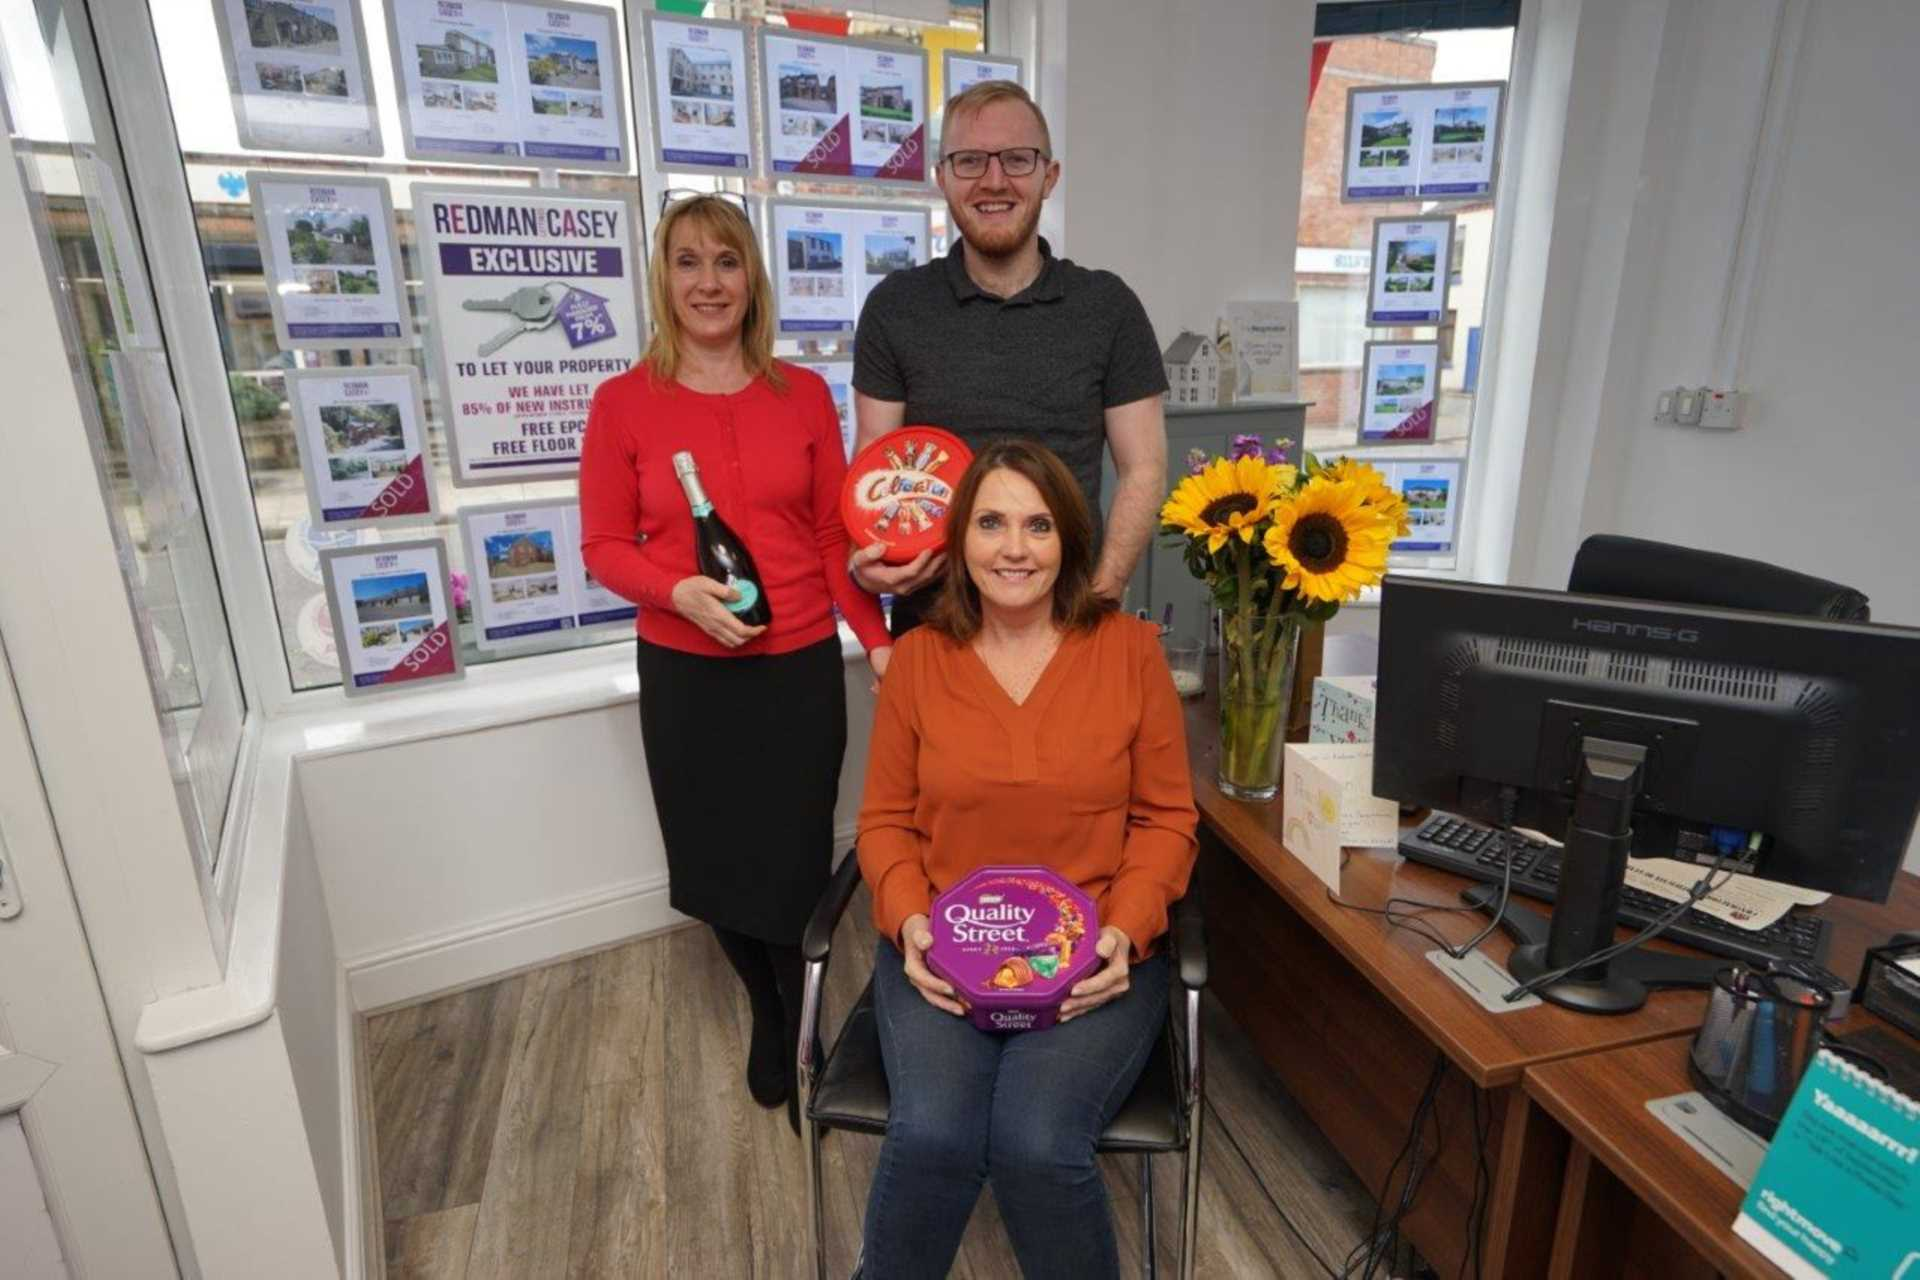 Delighted to receive flowers, prosecco and chocolates